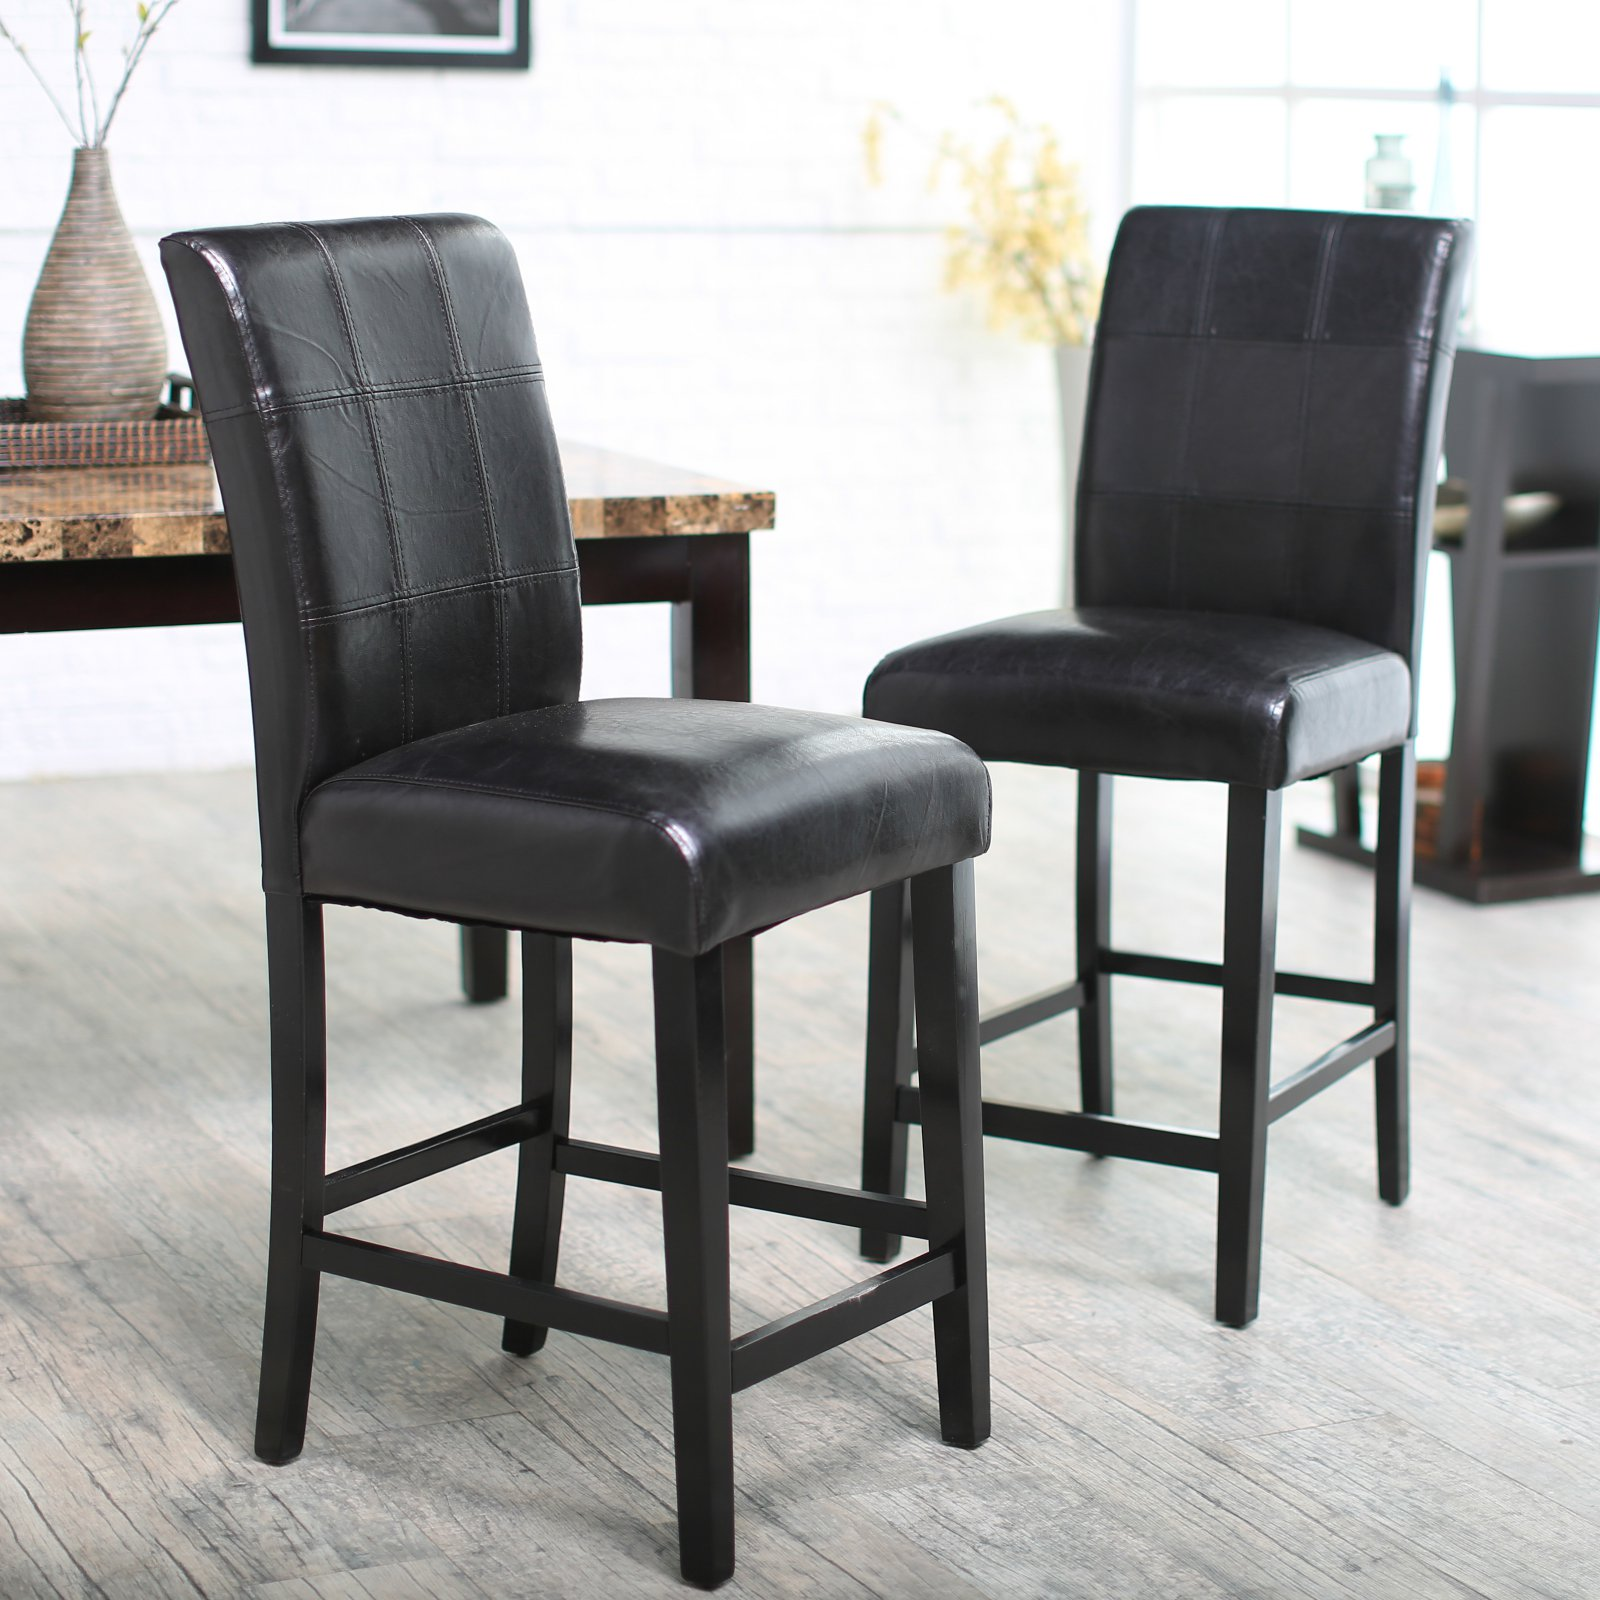 Palazzo 26 Inch Counter Stool Black Set Of 2 Walmartcom